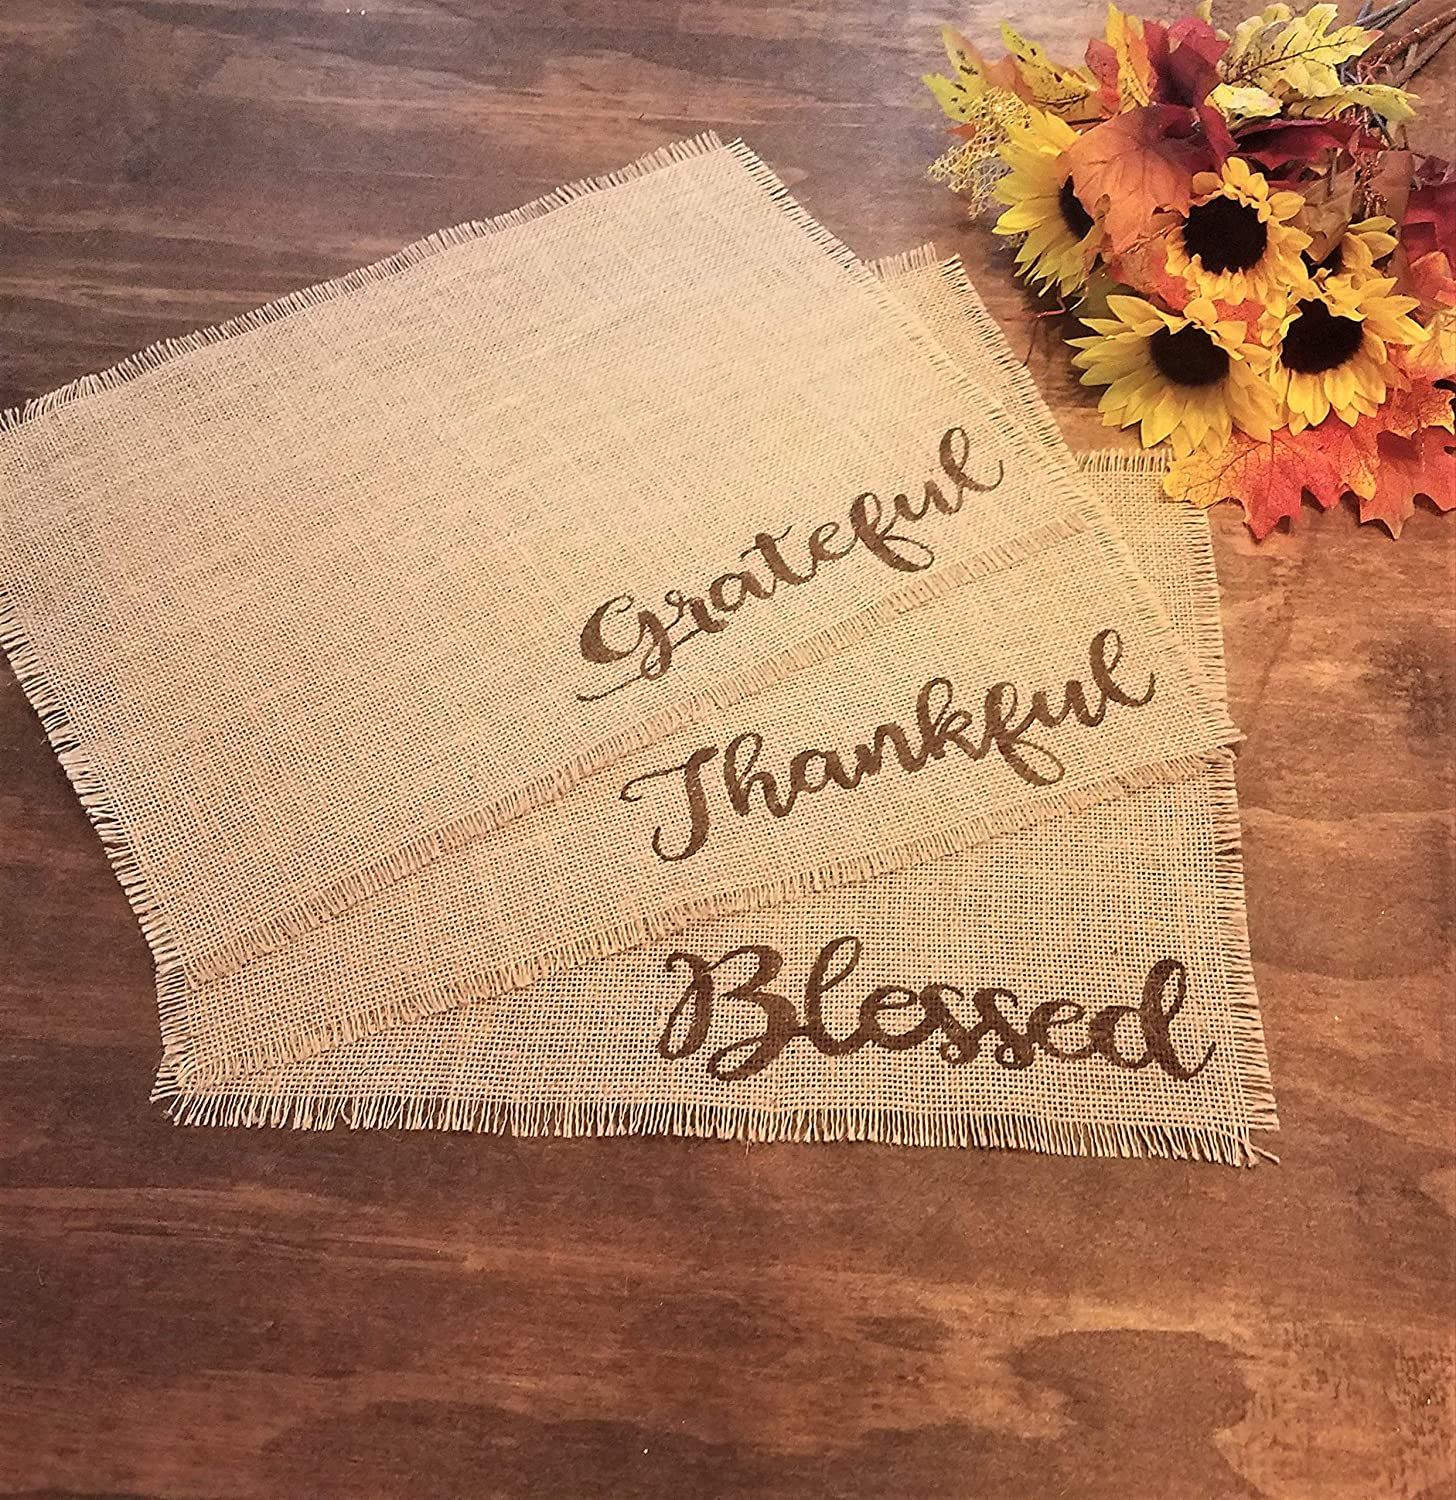 2 Thankful, 2 Grateful, and 2 Blessed Farmhouse Thanksgiving Placemats For Dining Table Set of 6 Rustic Burlap Fall Placemats Unique Holiday Place Mats Natural Fiber With Matching Runner Optional